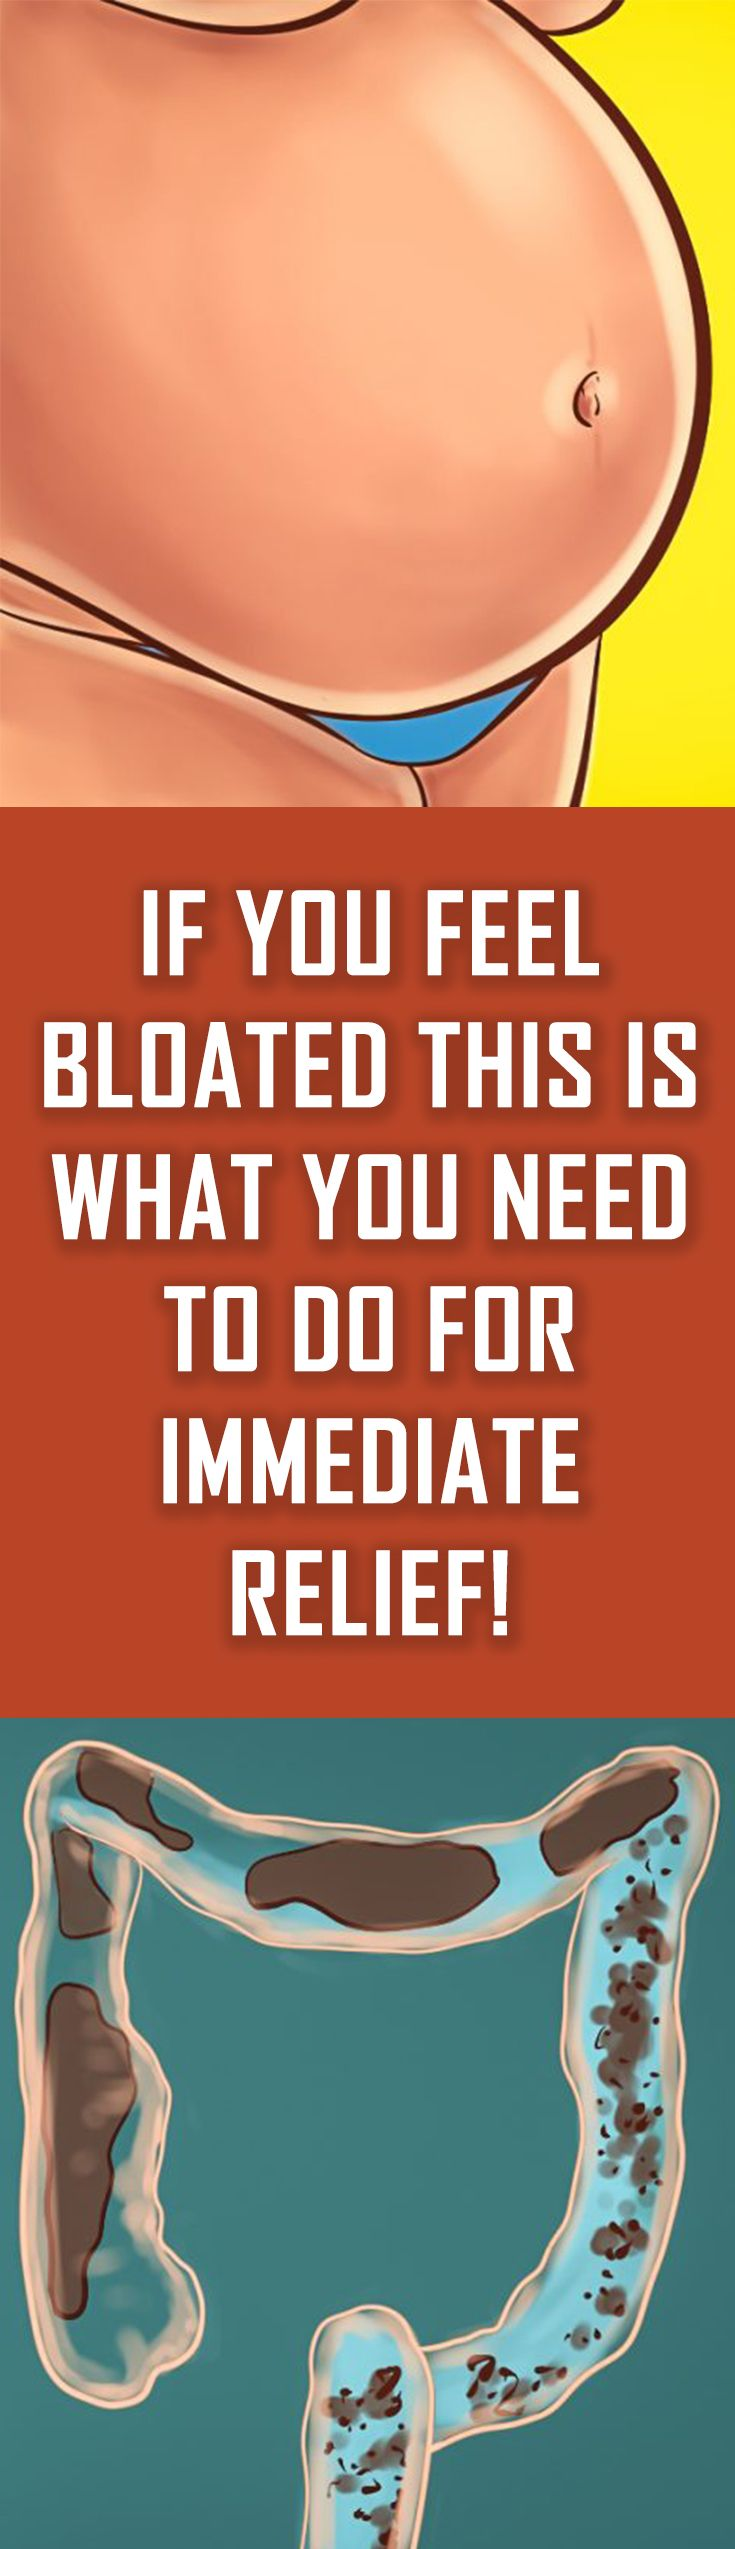 If You Feel Bloated This Is What You Need To Do For Immediate Relief Health Health Info Bloating Remedies